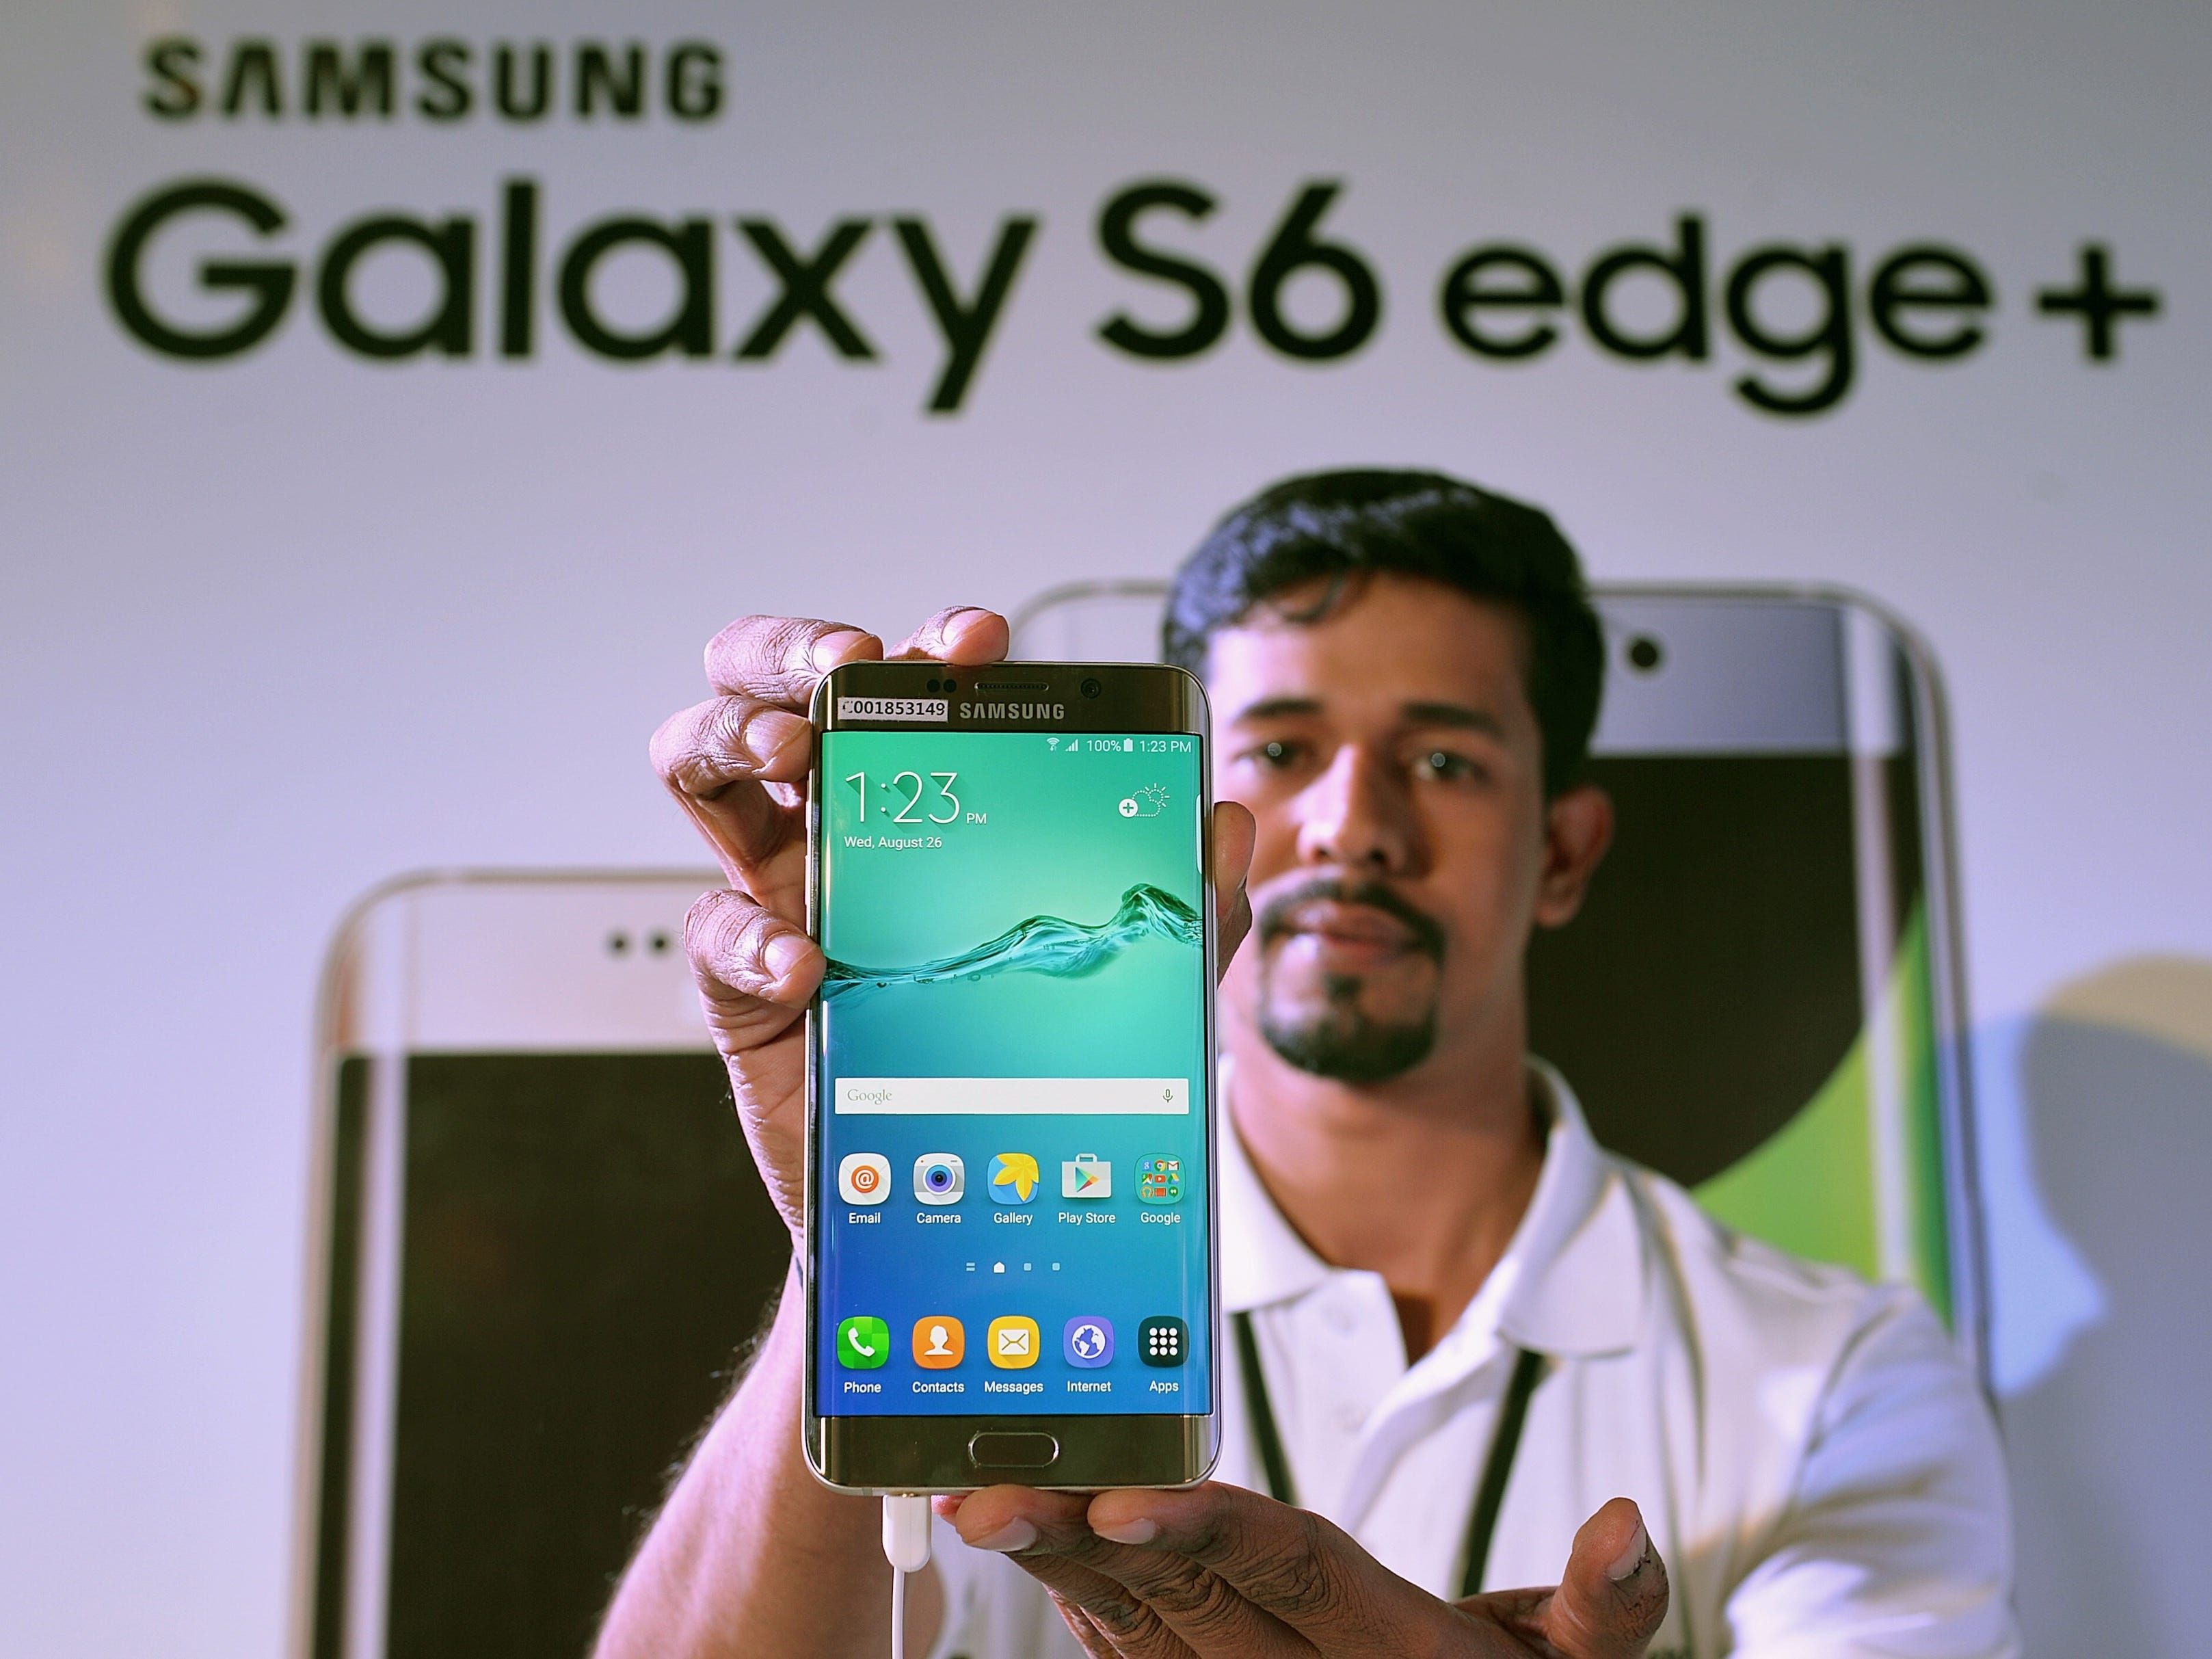 A salesman shows a Galaxy S6 Edge +  in Bangalore on August 26, 2015.